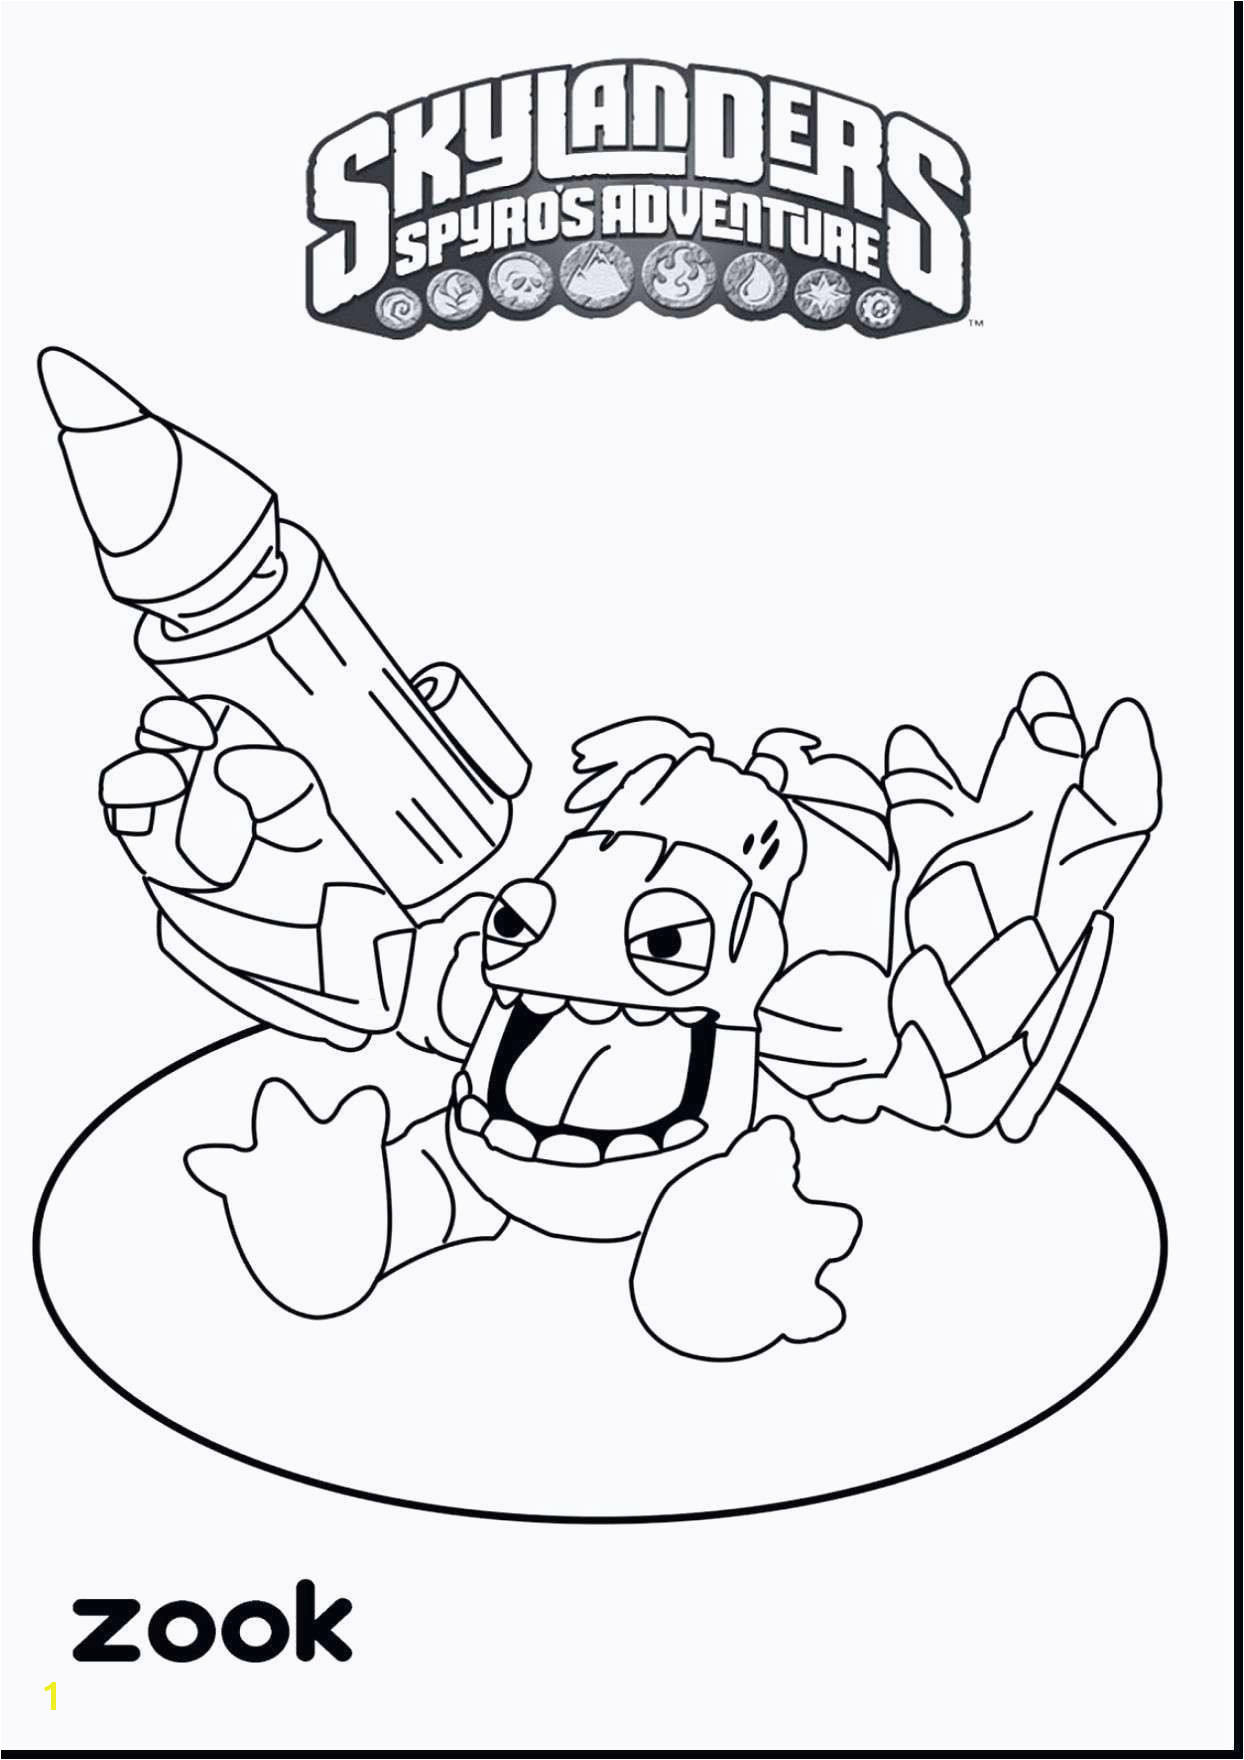 Kids Coloring Pages Beautiful Coloring Page Websites New Witch Coloring Pages New Crayola Pages 0d 27 Christmas Coloring Pages Baby Jesus